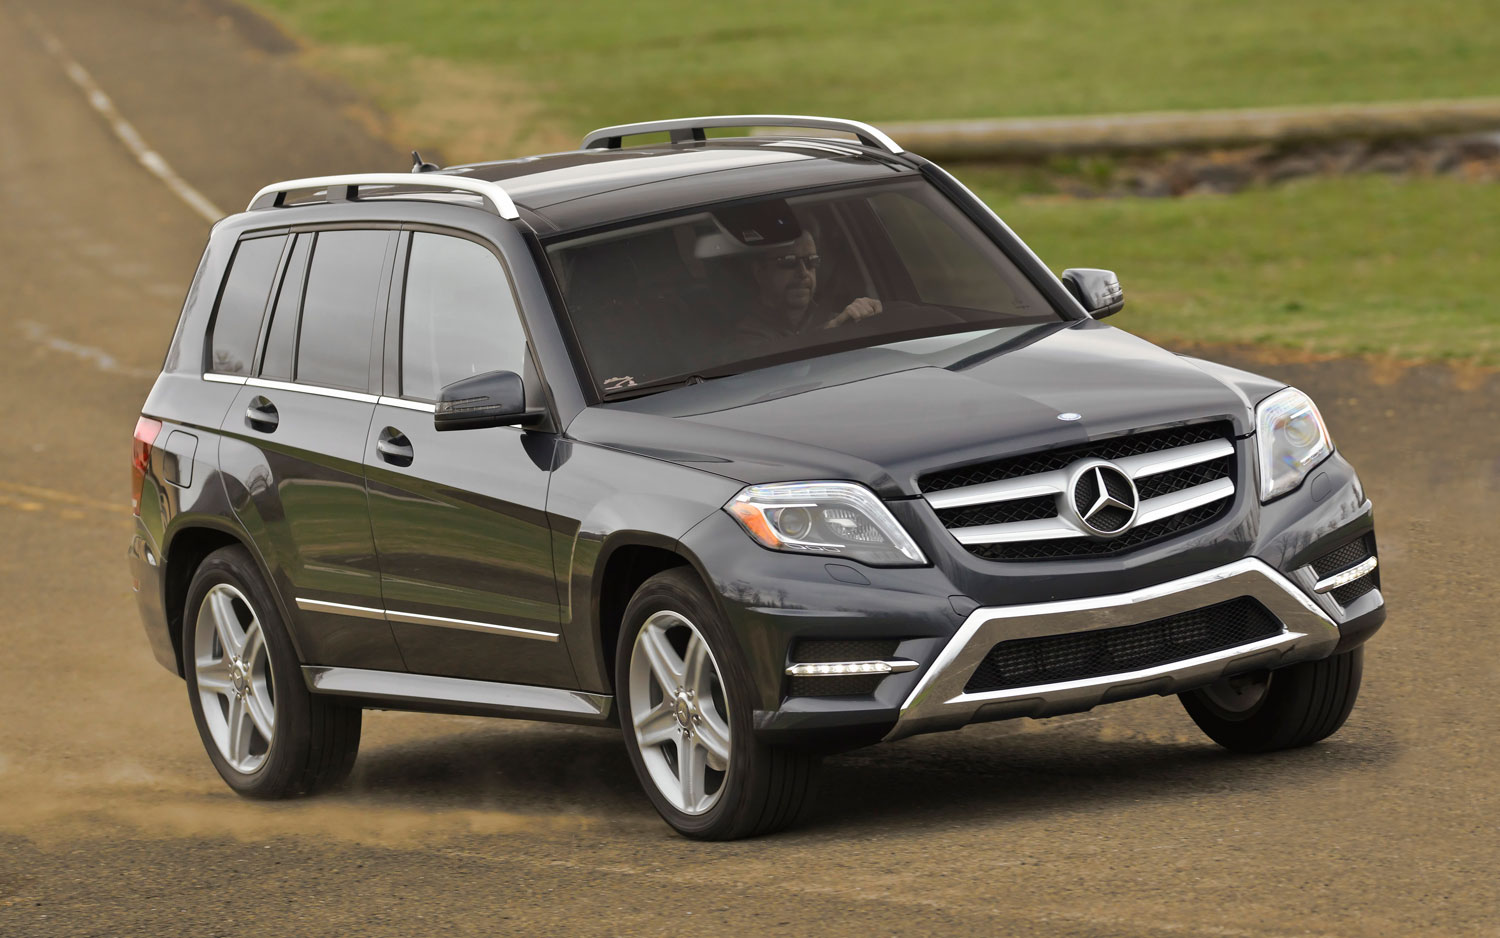 2013 mercedes benz glk250 bluetec 4matic driven for Mercedes benz bluetec suv